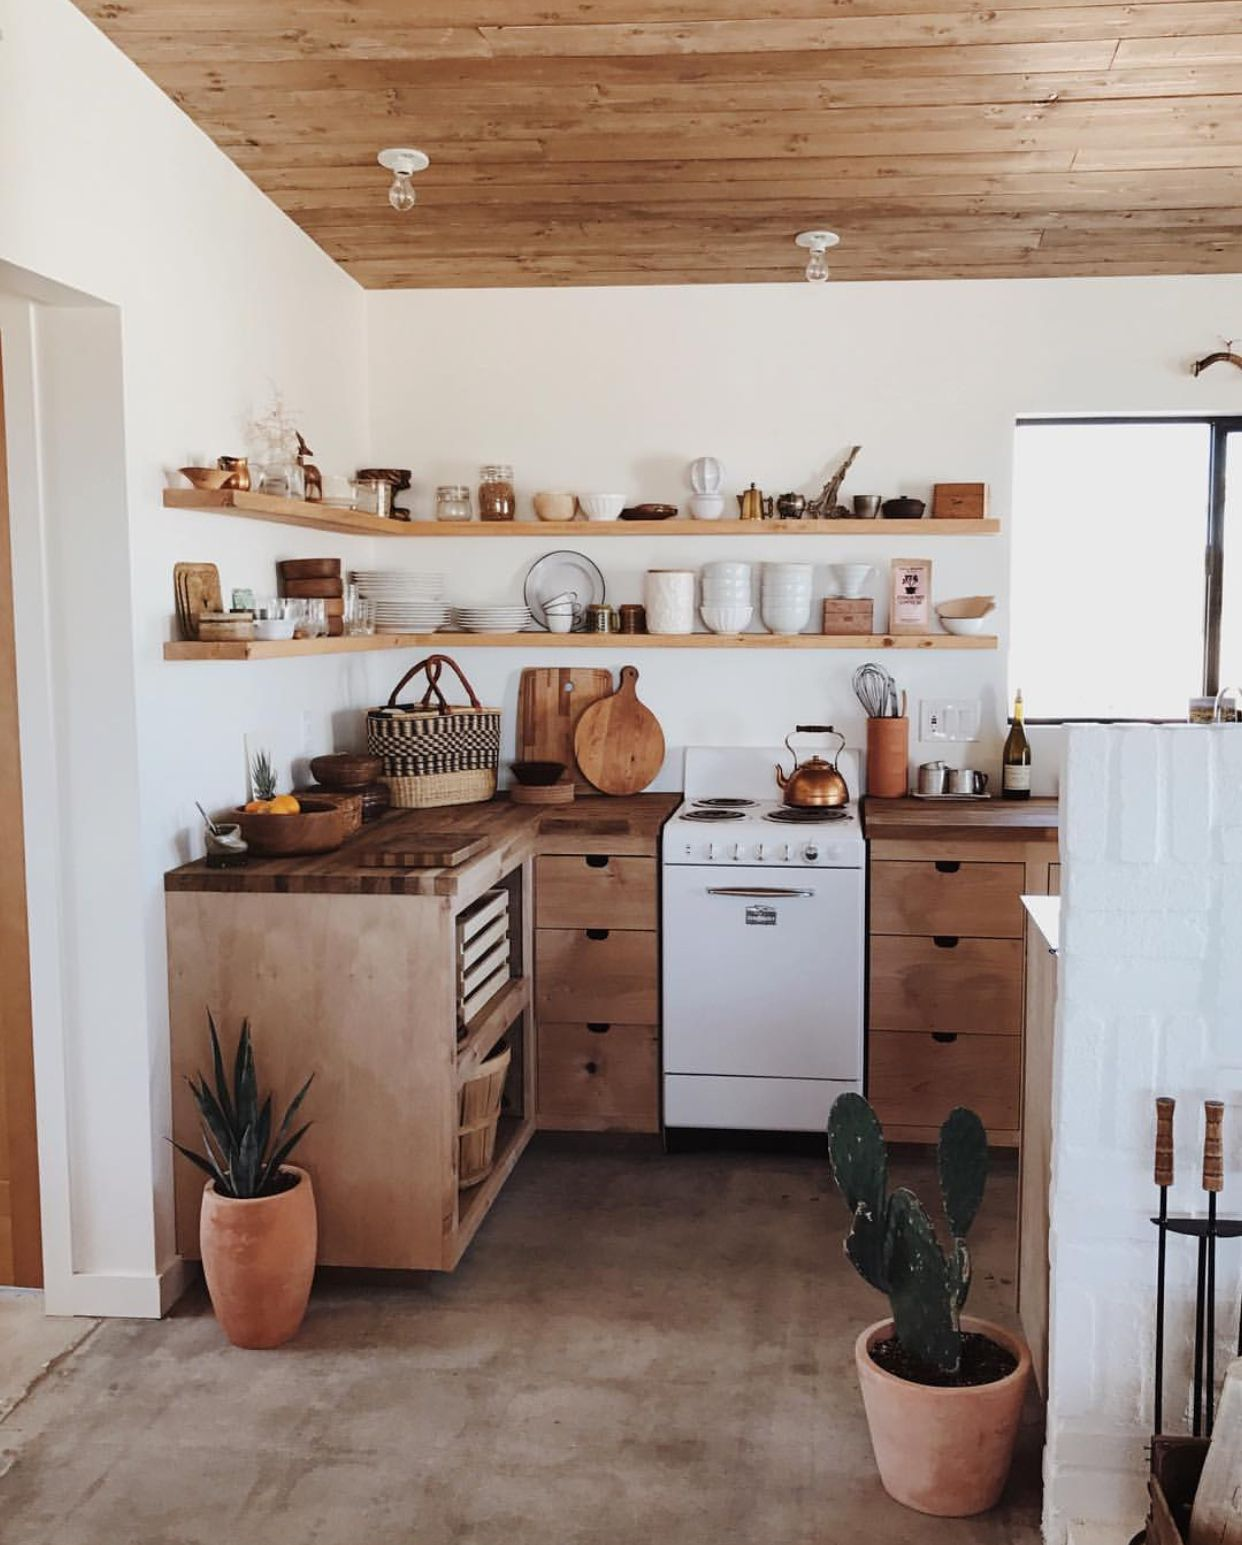 Kitchen Decoration Things: Pin By Caroline Gratton On House Ideas